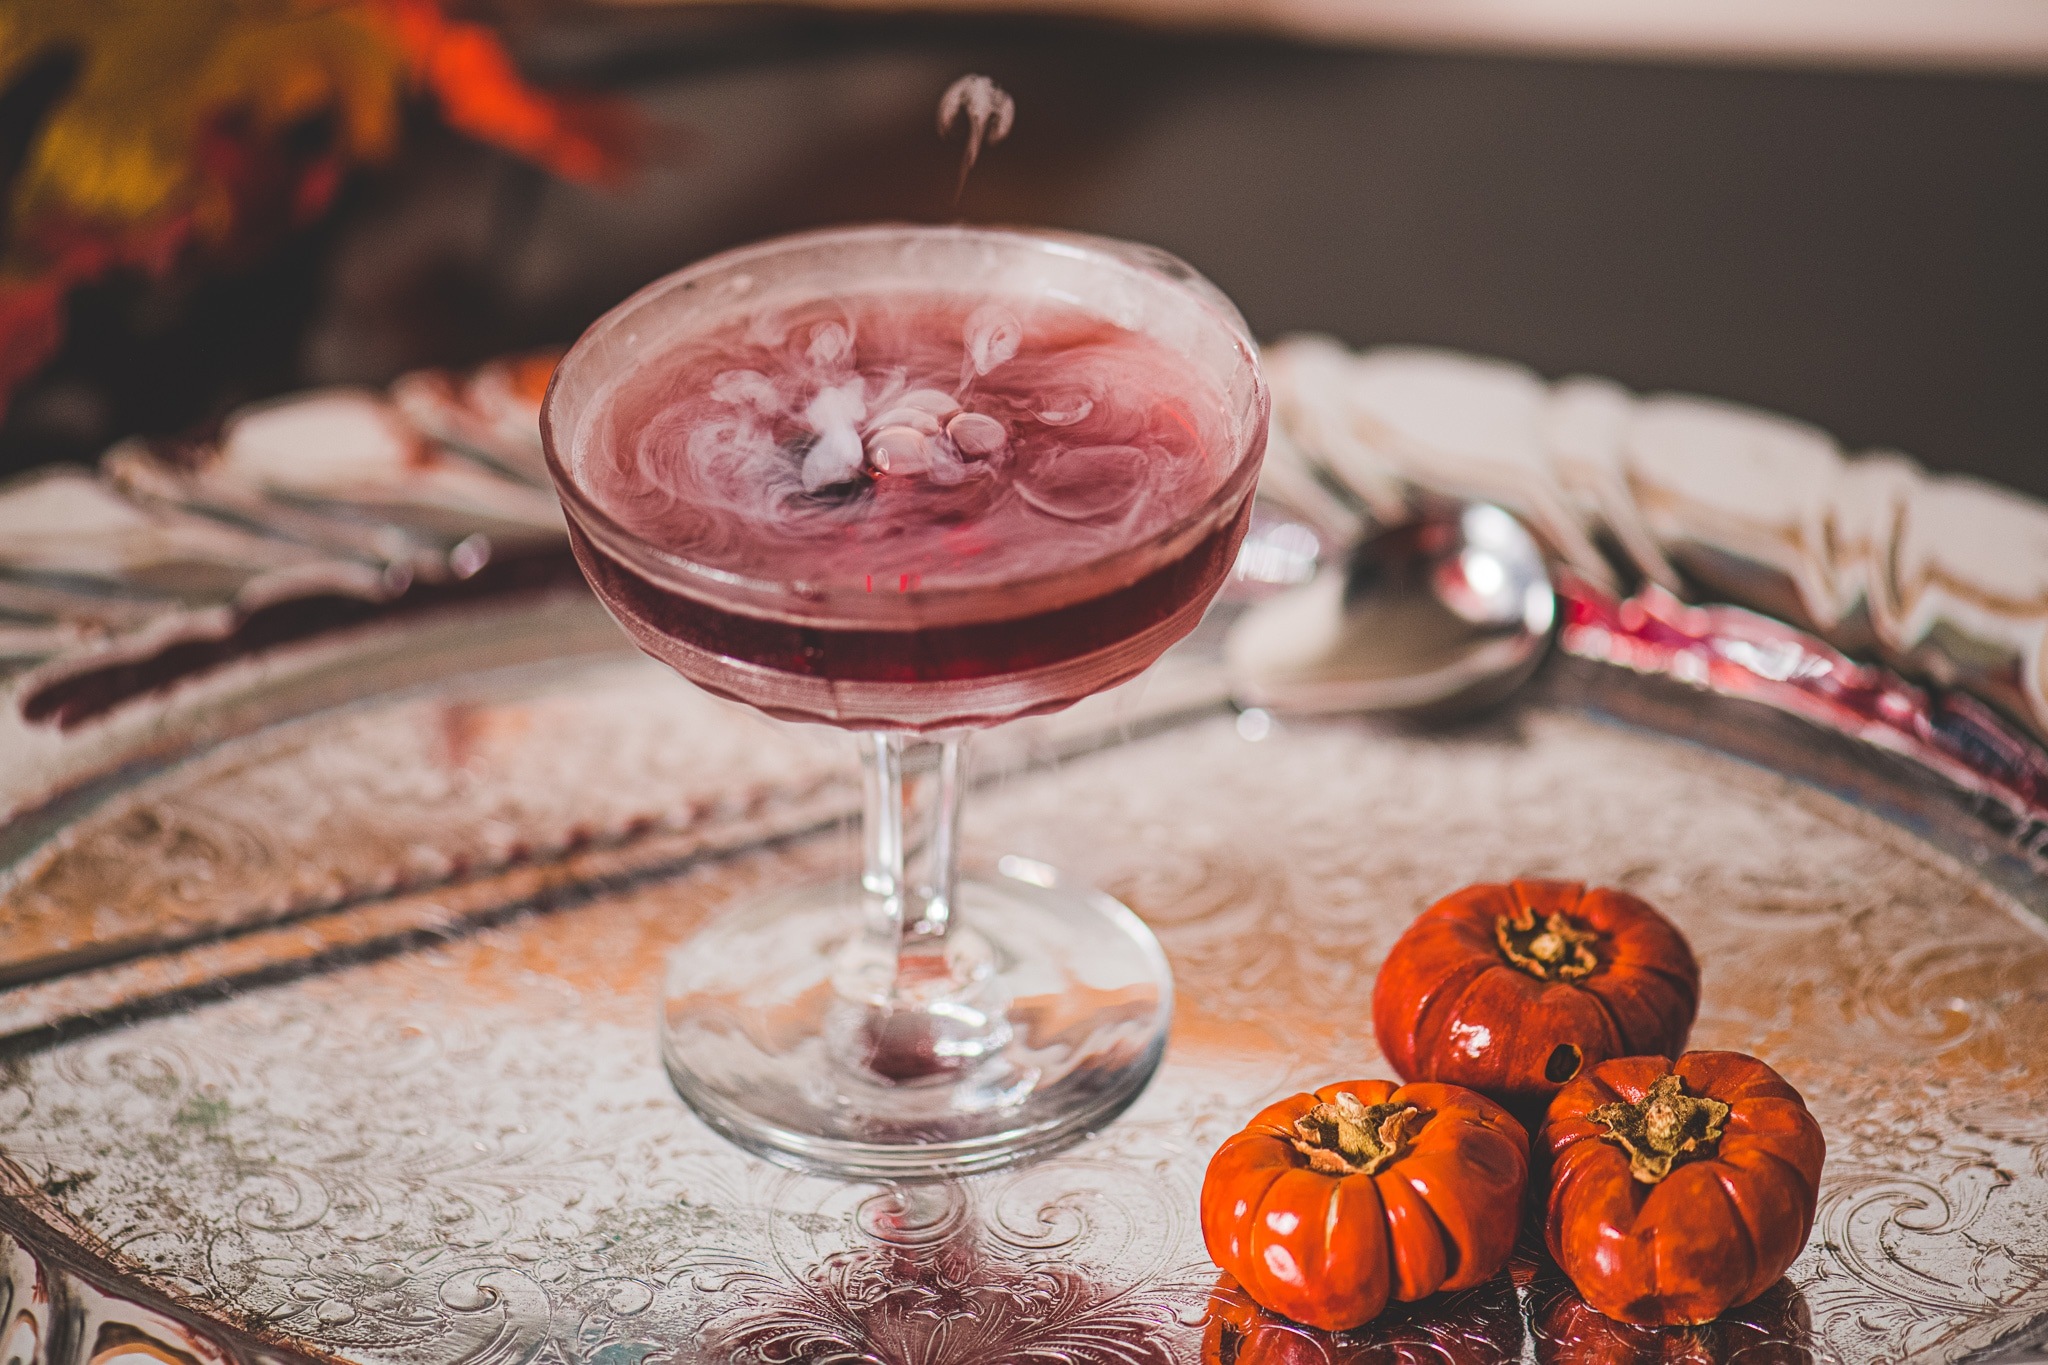 Royal haunt cocktail recipe for halloween